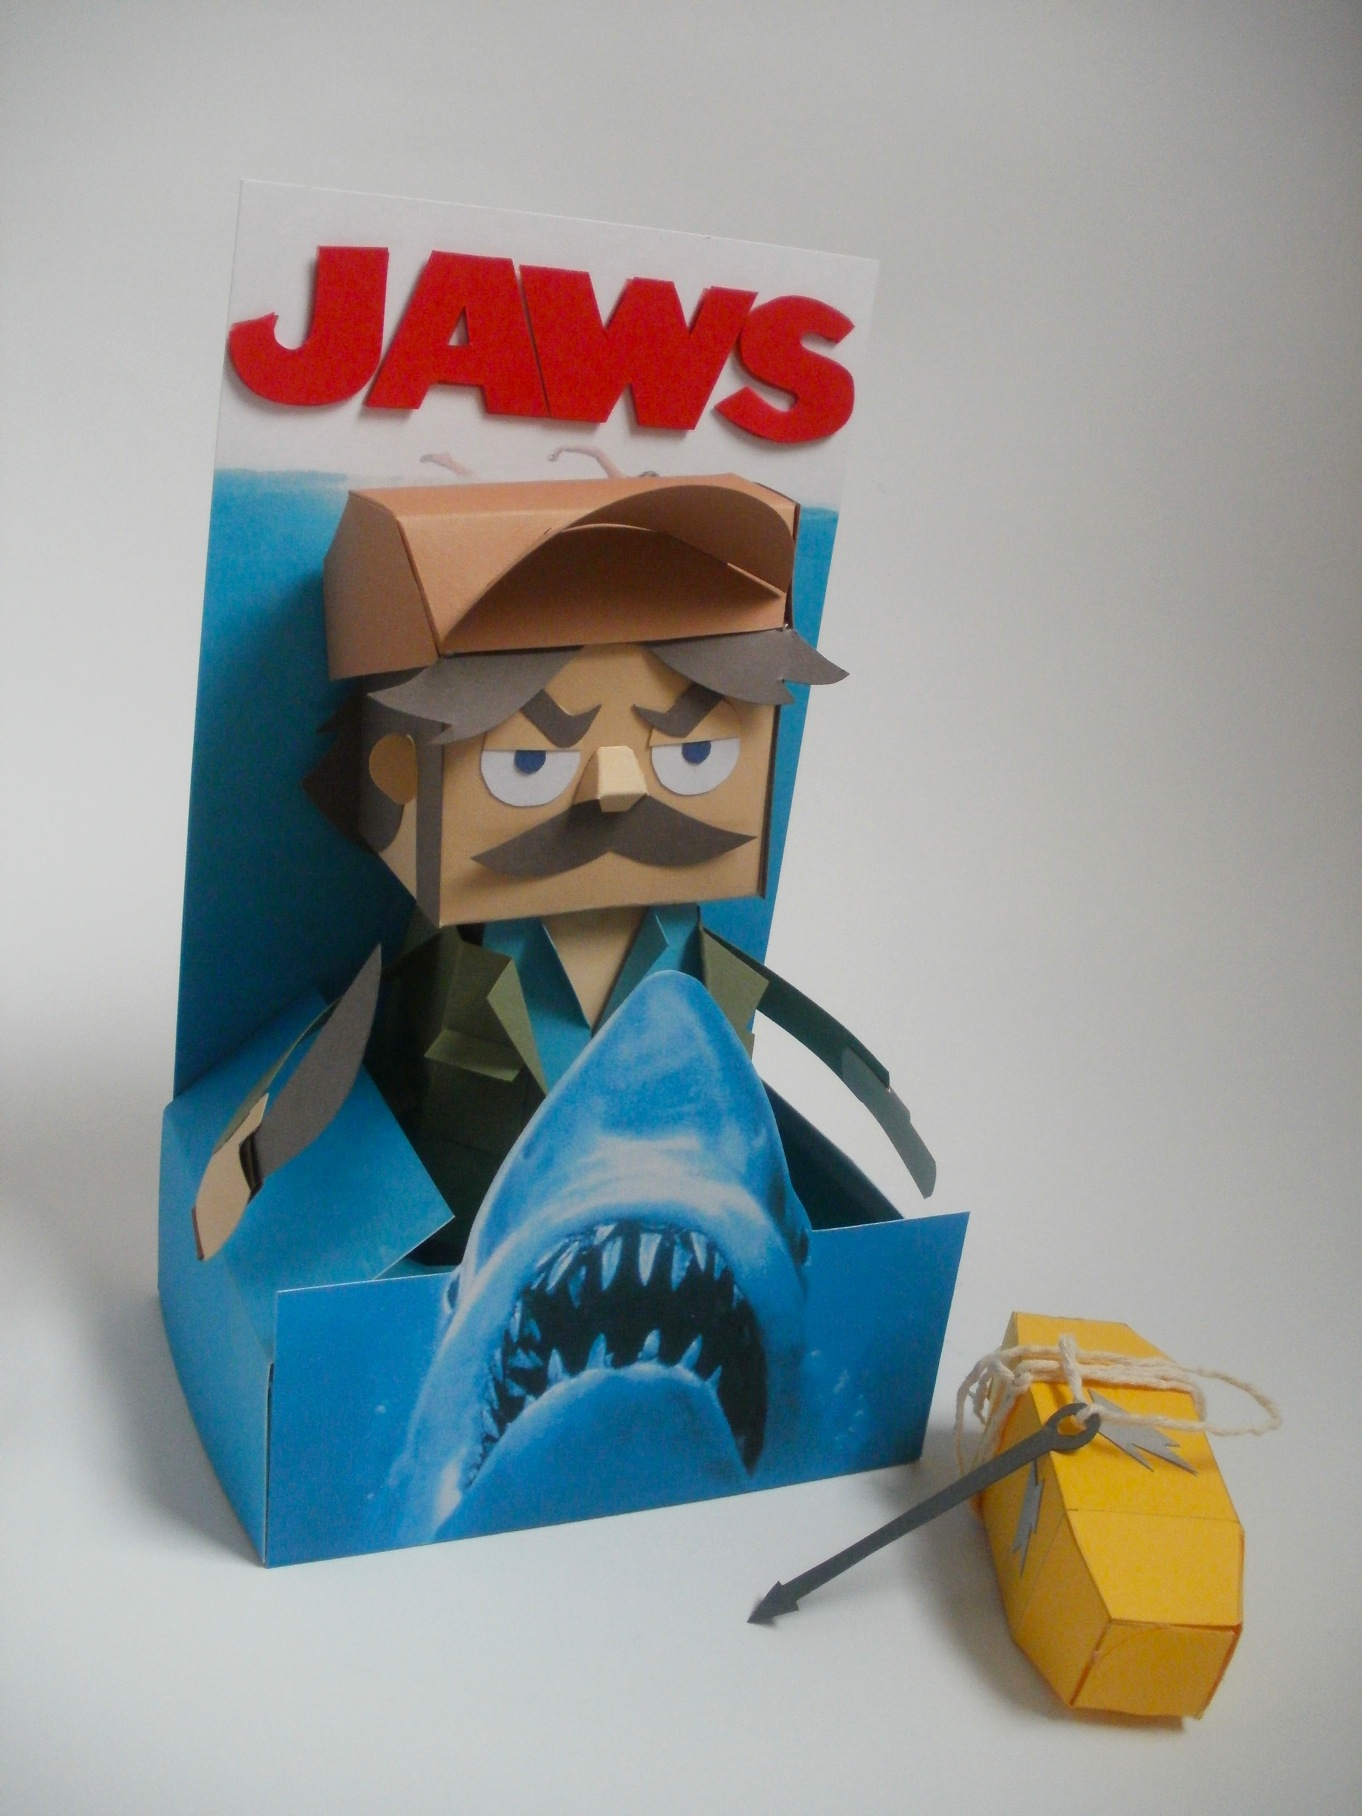 Dougy74 Design Handmade 3D Paper Toy Cardboard Madness Americanboy1974yahoocouk Page 2